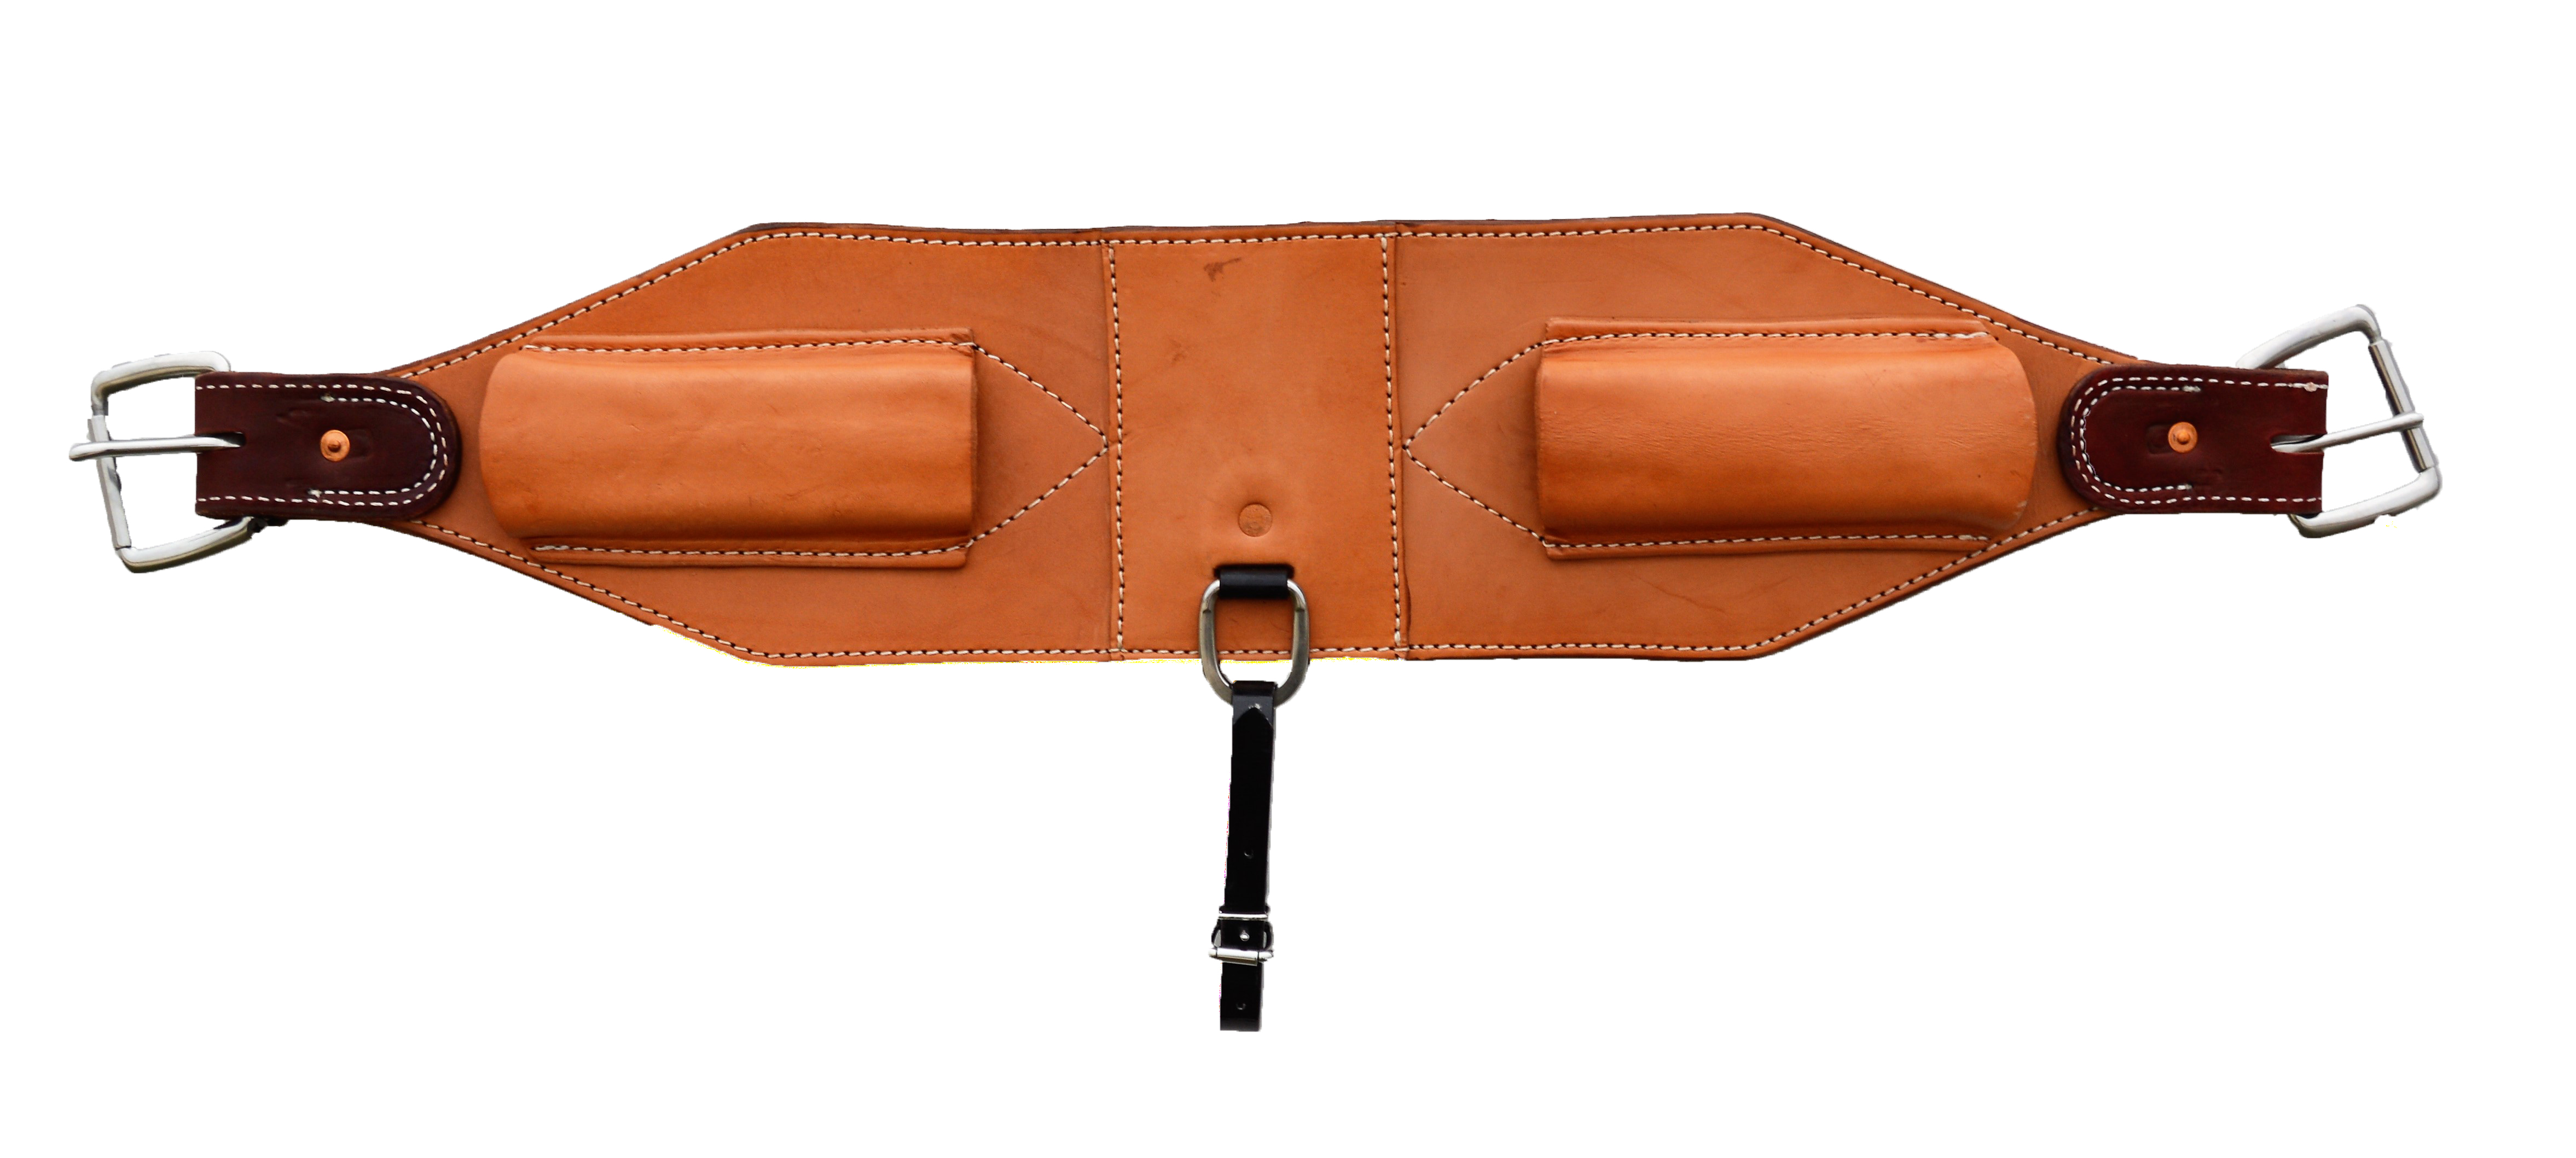 """1886 30-1/2"""" x 6-1/4"""" Back flank golden leather"""